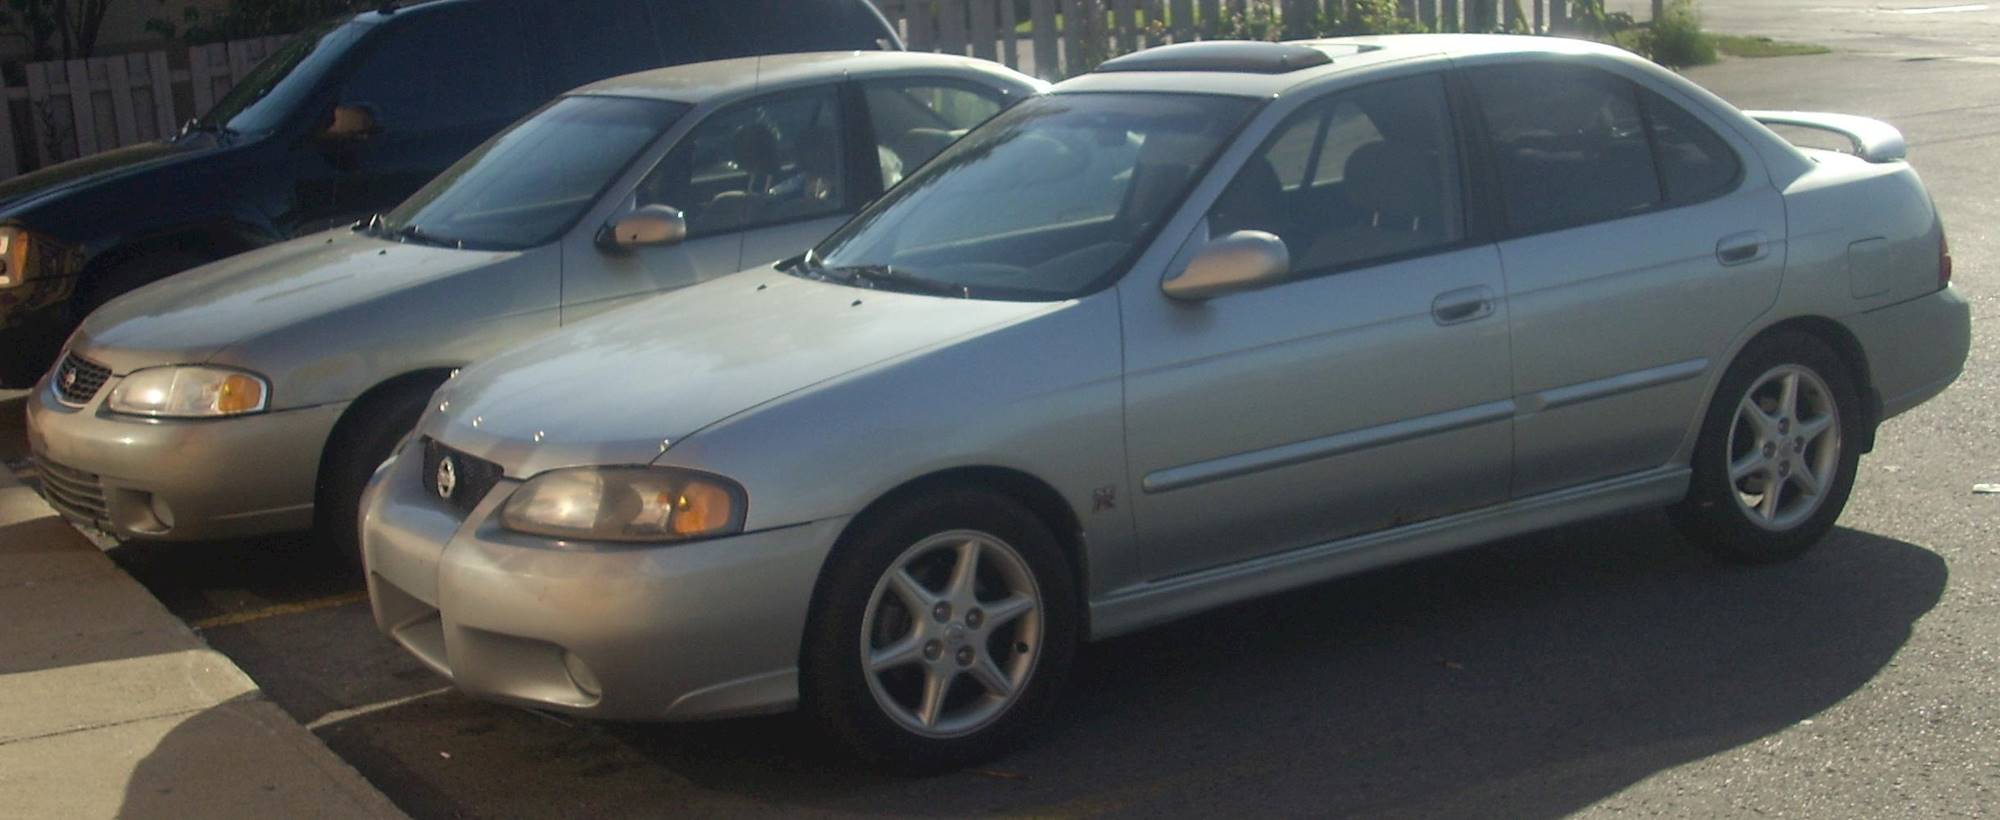 2002 Nissan Sentra Se R Spec V Sedan 2 5l Manual